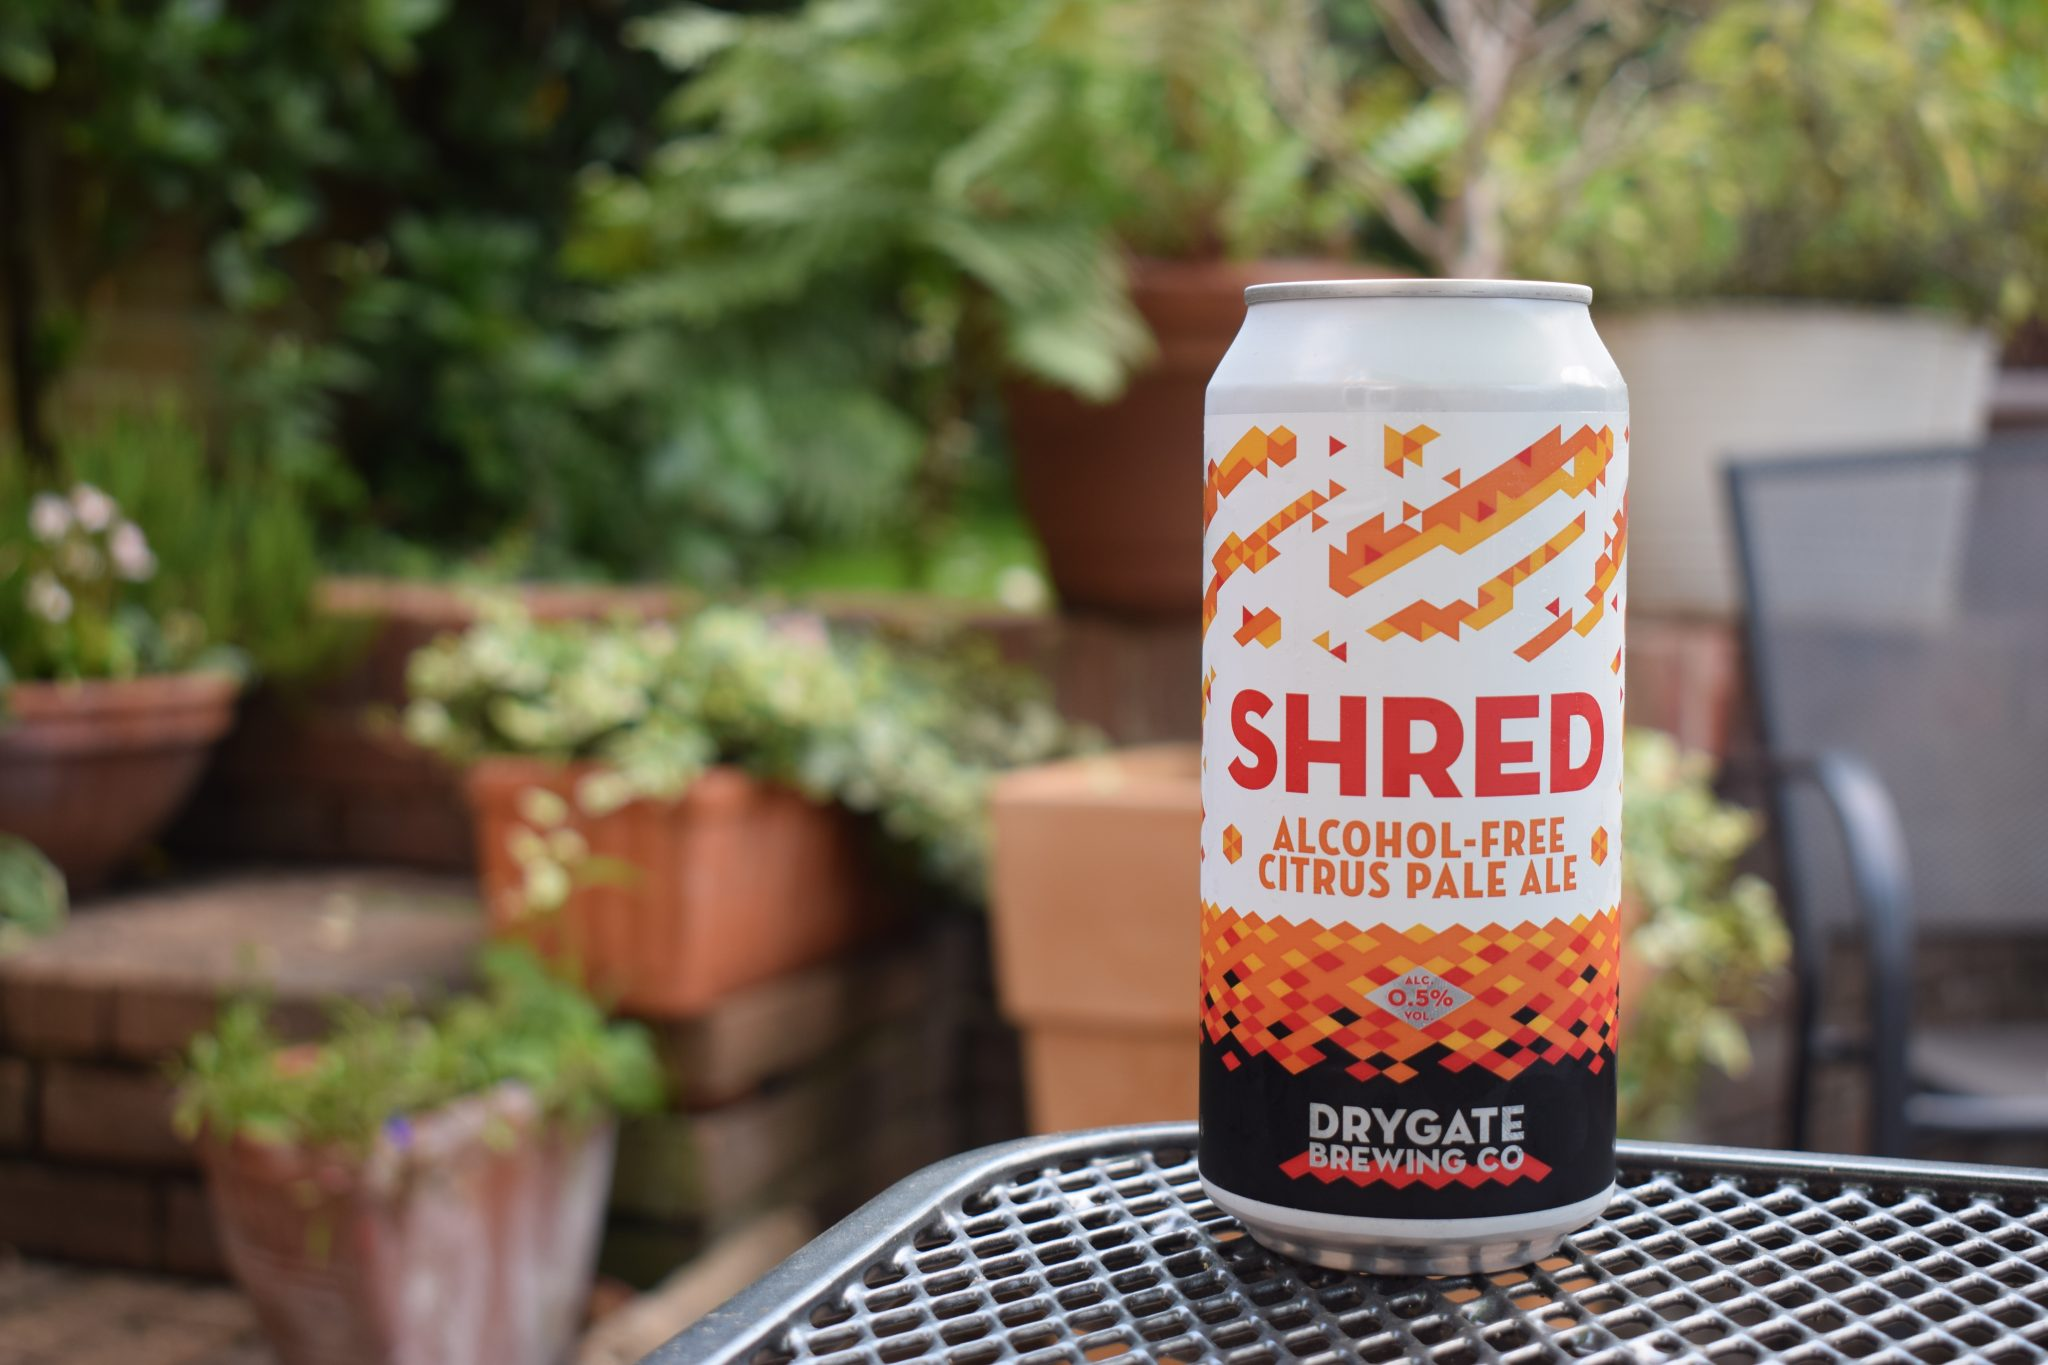 """Shred"" (0.5%) by Drygate"